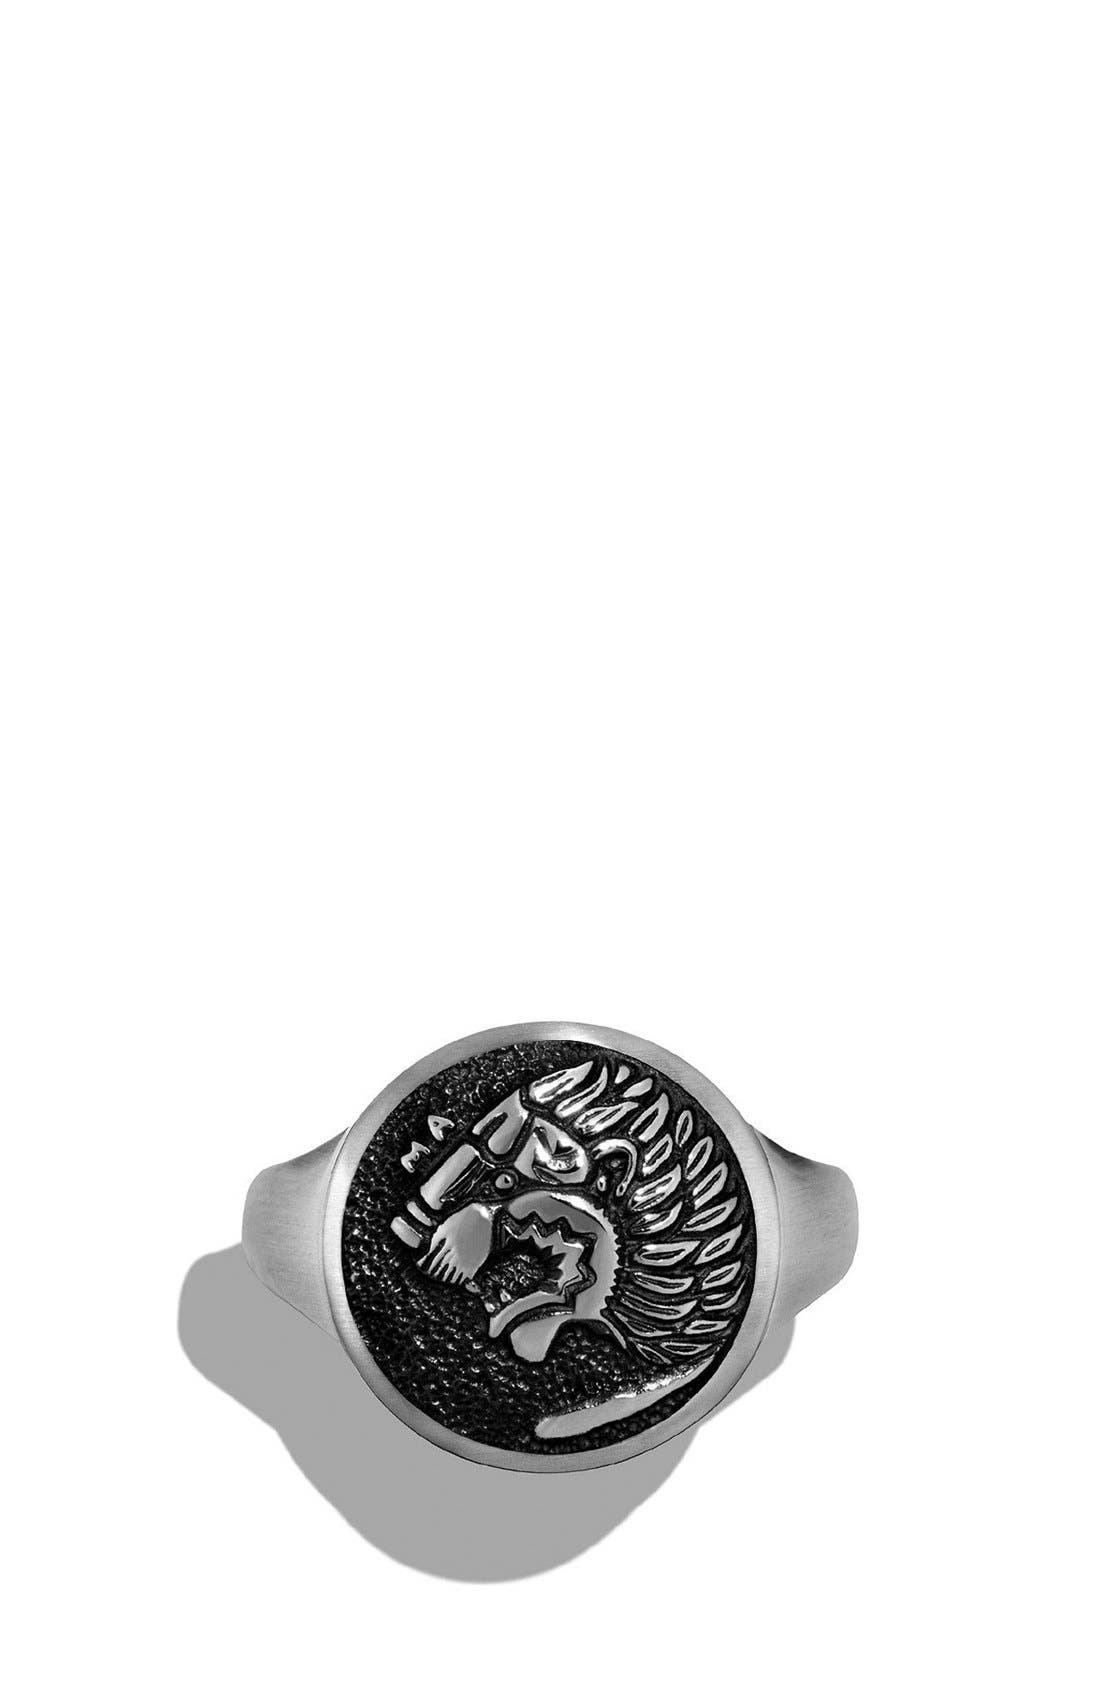 'Petrvs' Lion Signet Pinky Ring,                             Alternate thumbnail 3, color,                             SILVER